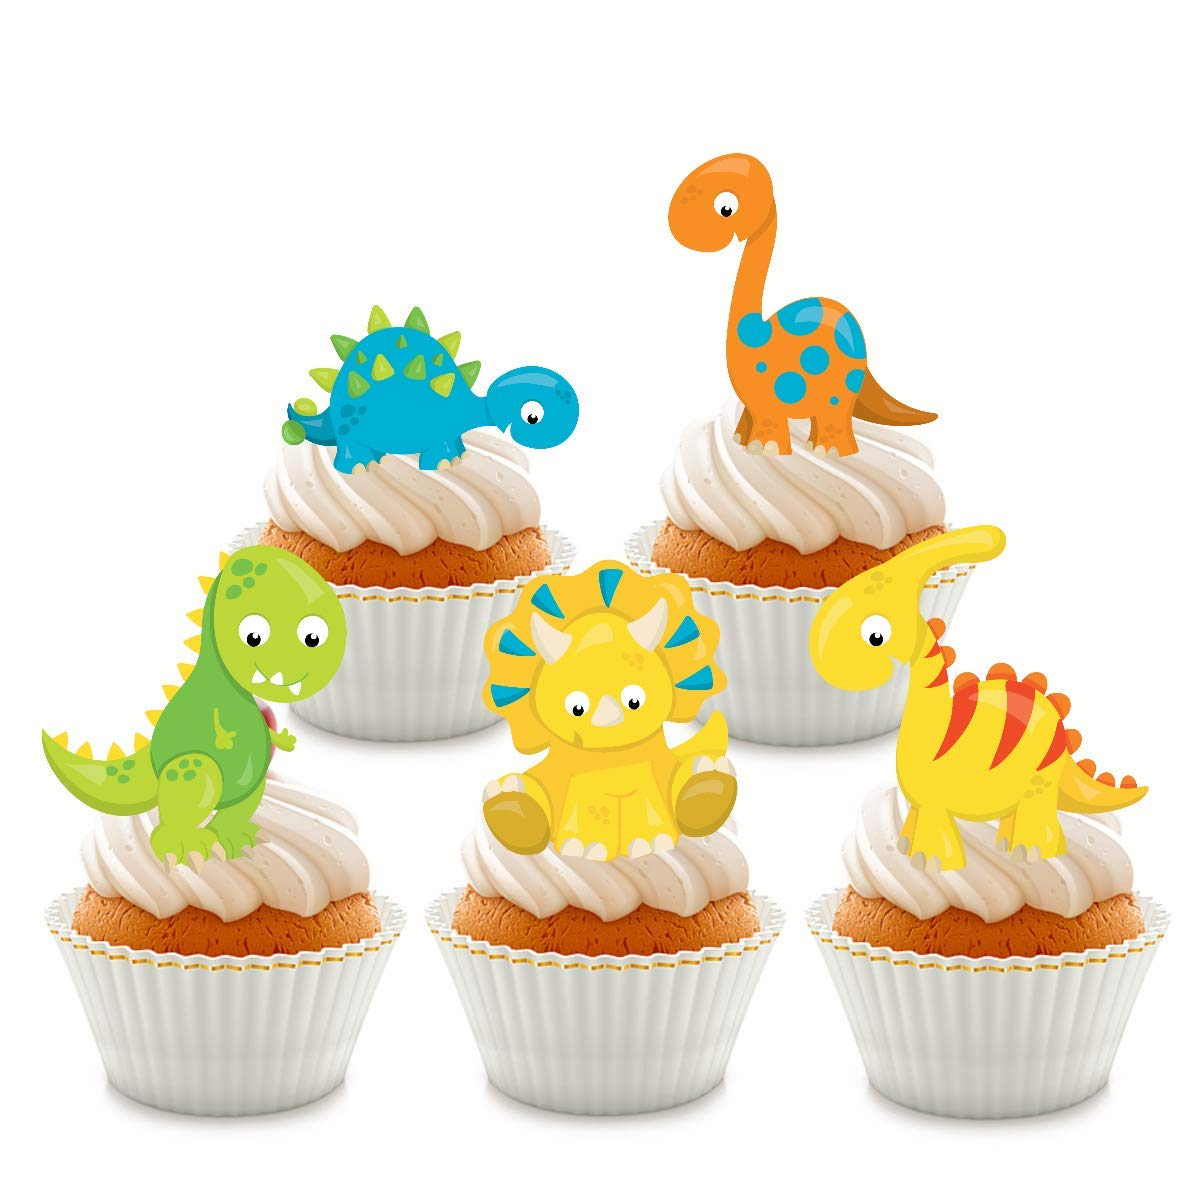 24 x Stand up Cartoon Dinosaurs Cupcake Toppers Edible Wafer Card